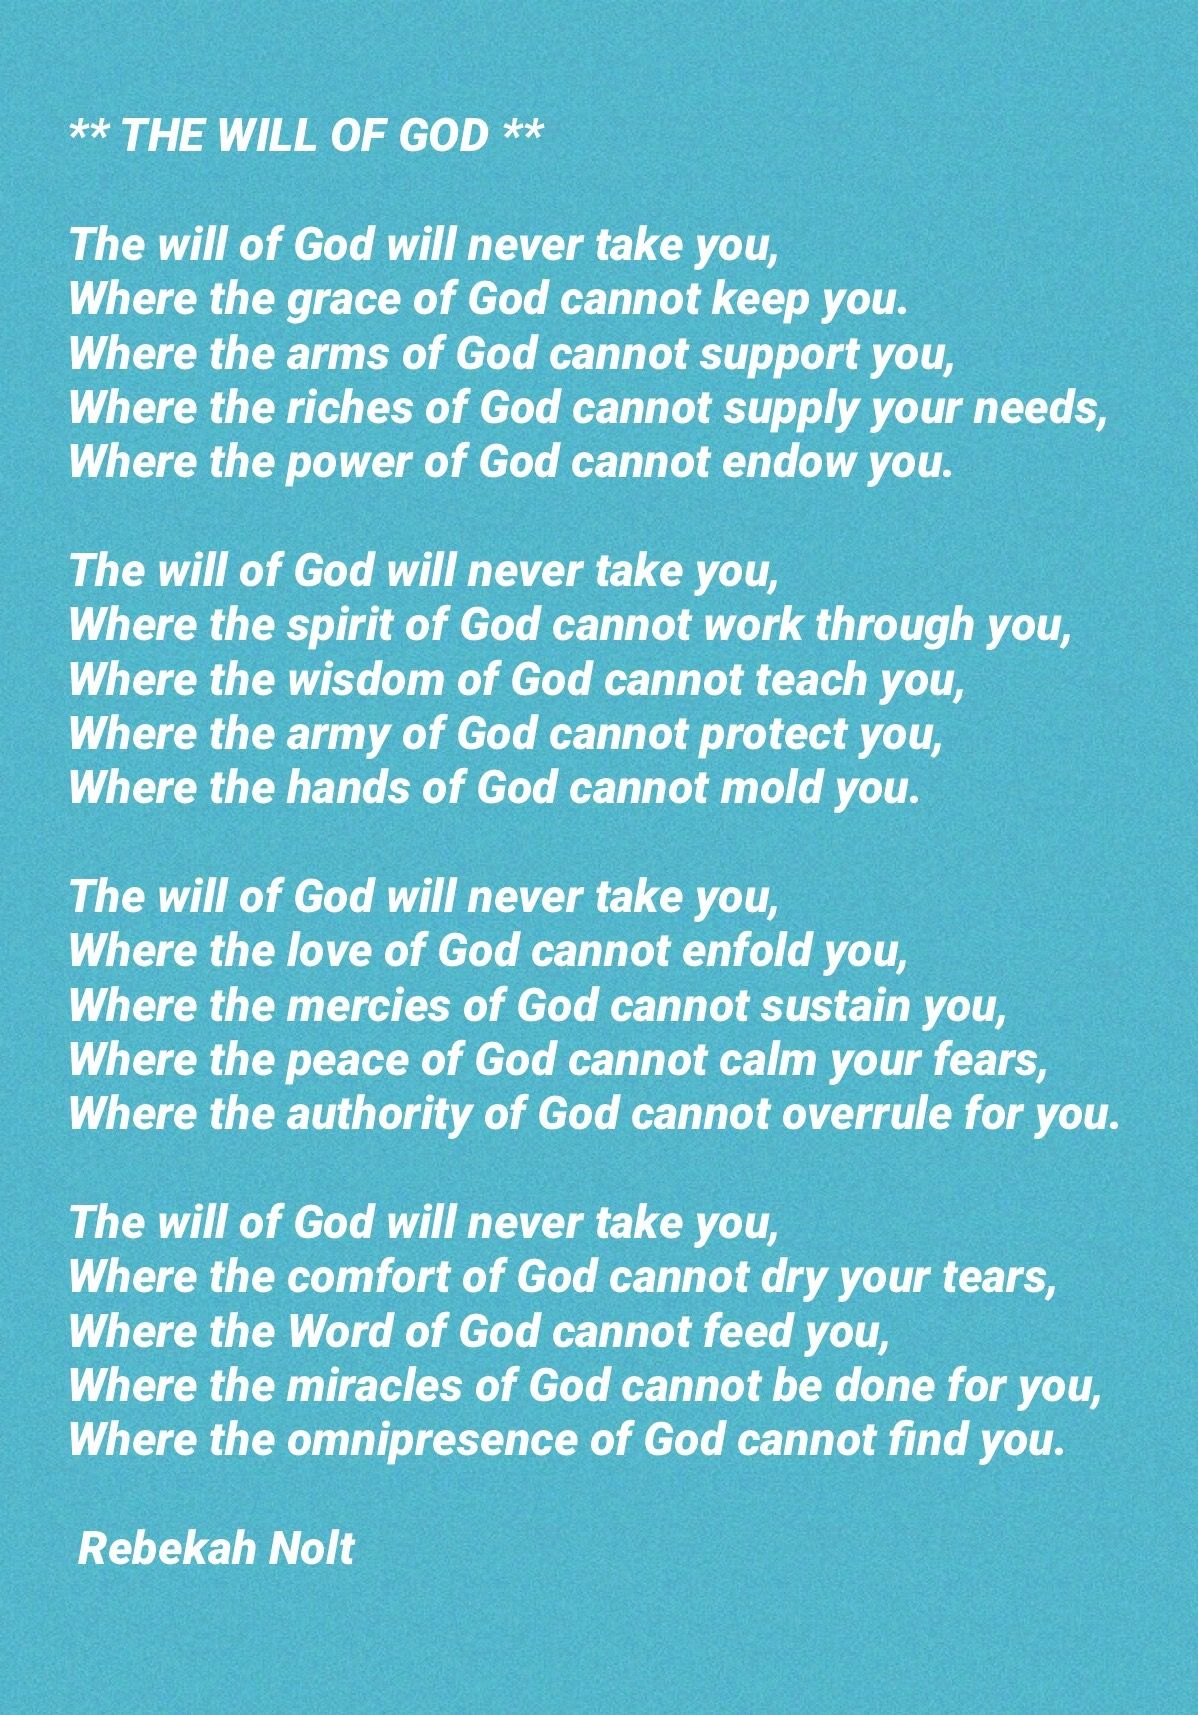 Pin By Cherie Kirk On Talks With God Precious Jesus Words